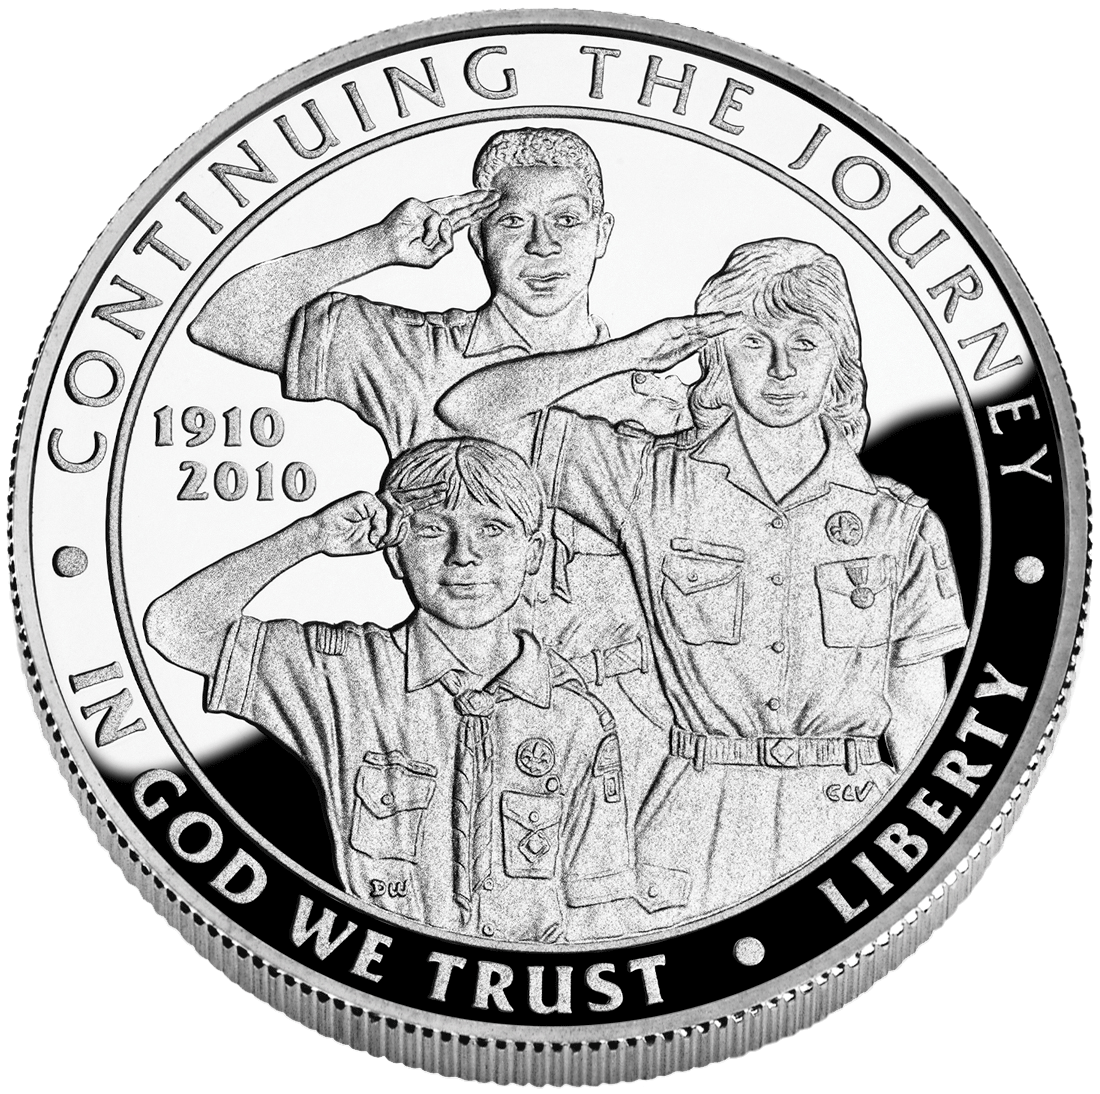 Boy_Scouts_of_America_Silver_Dollar_Centennial_Commemorative_Coin_obverse